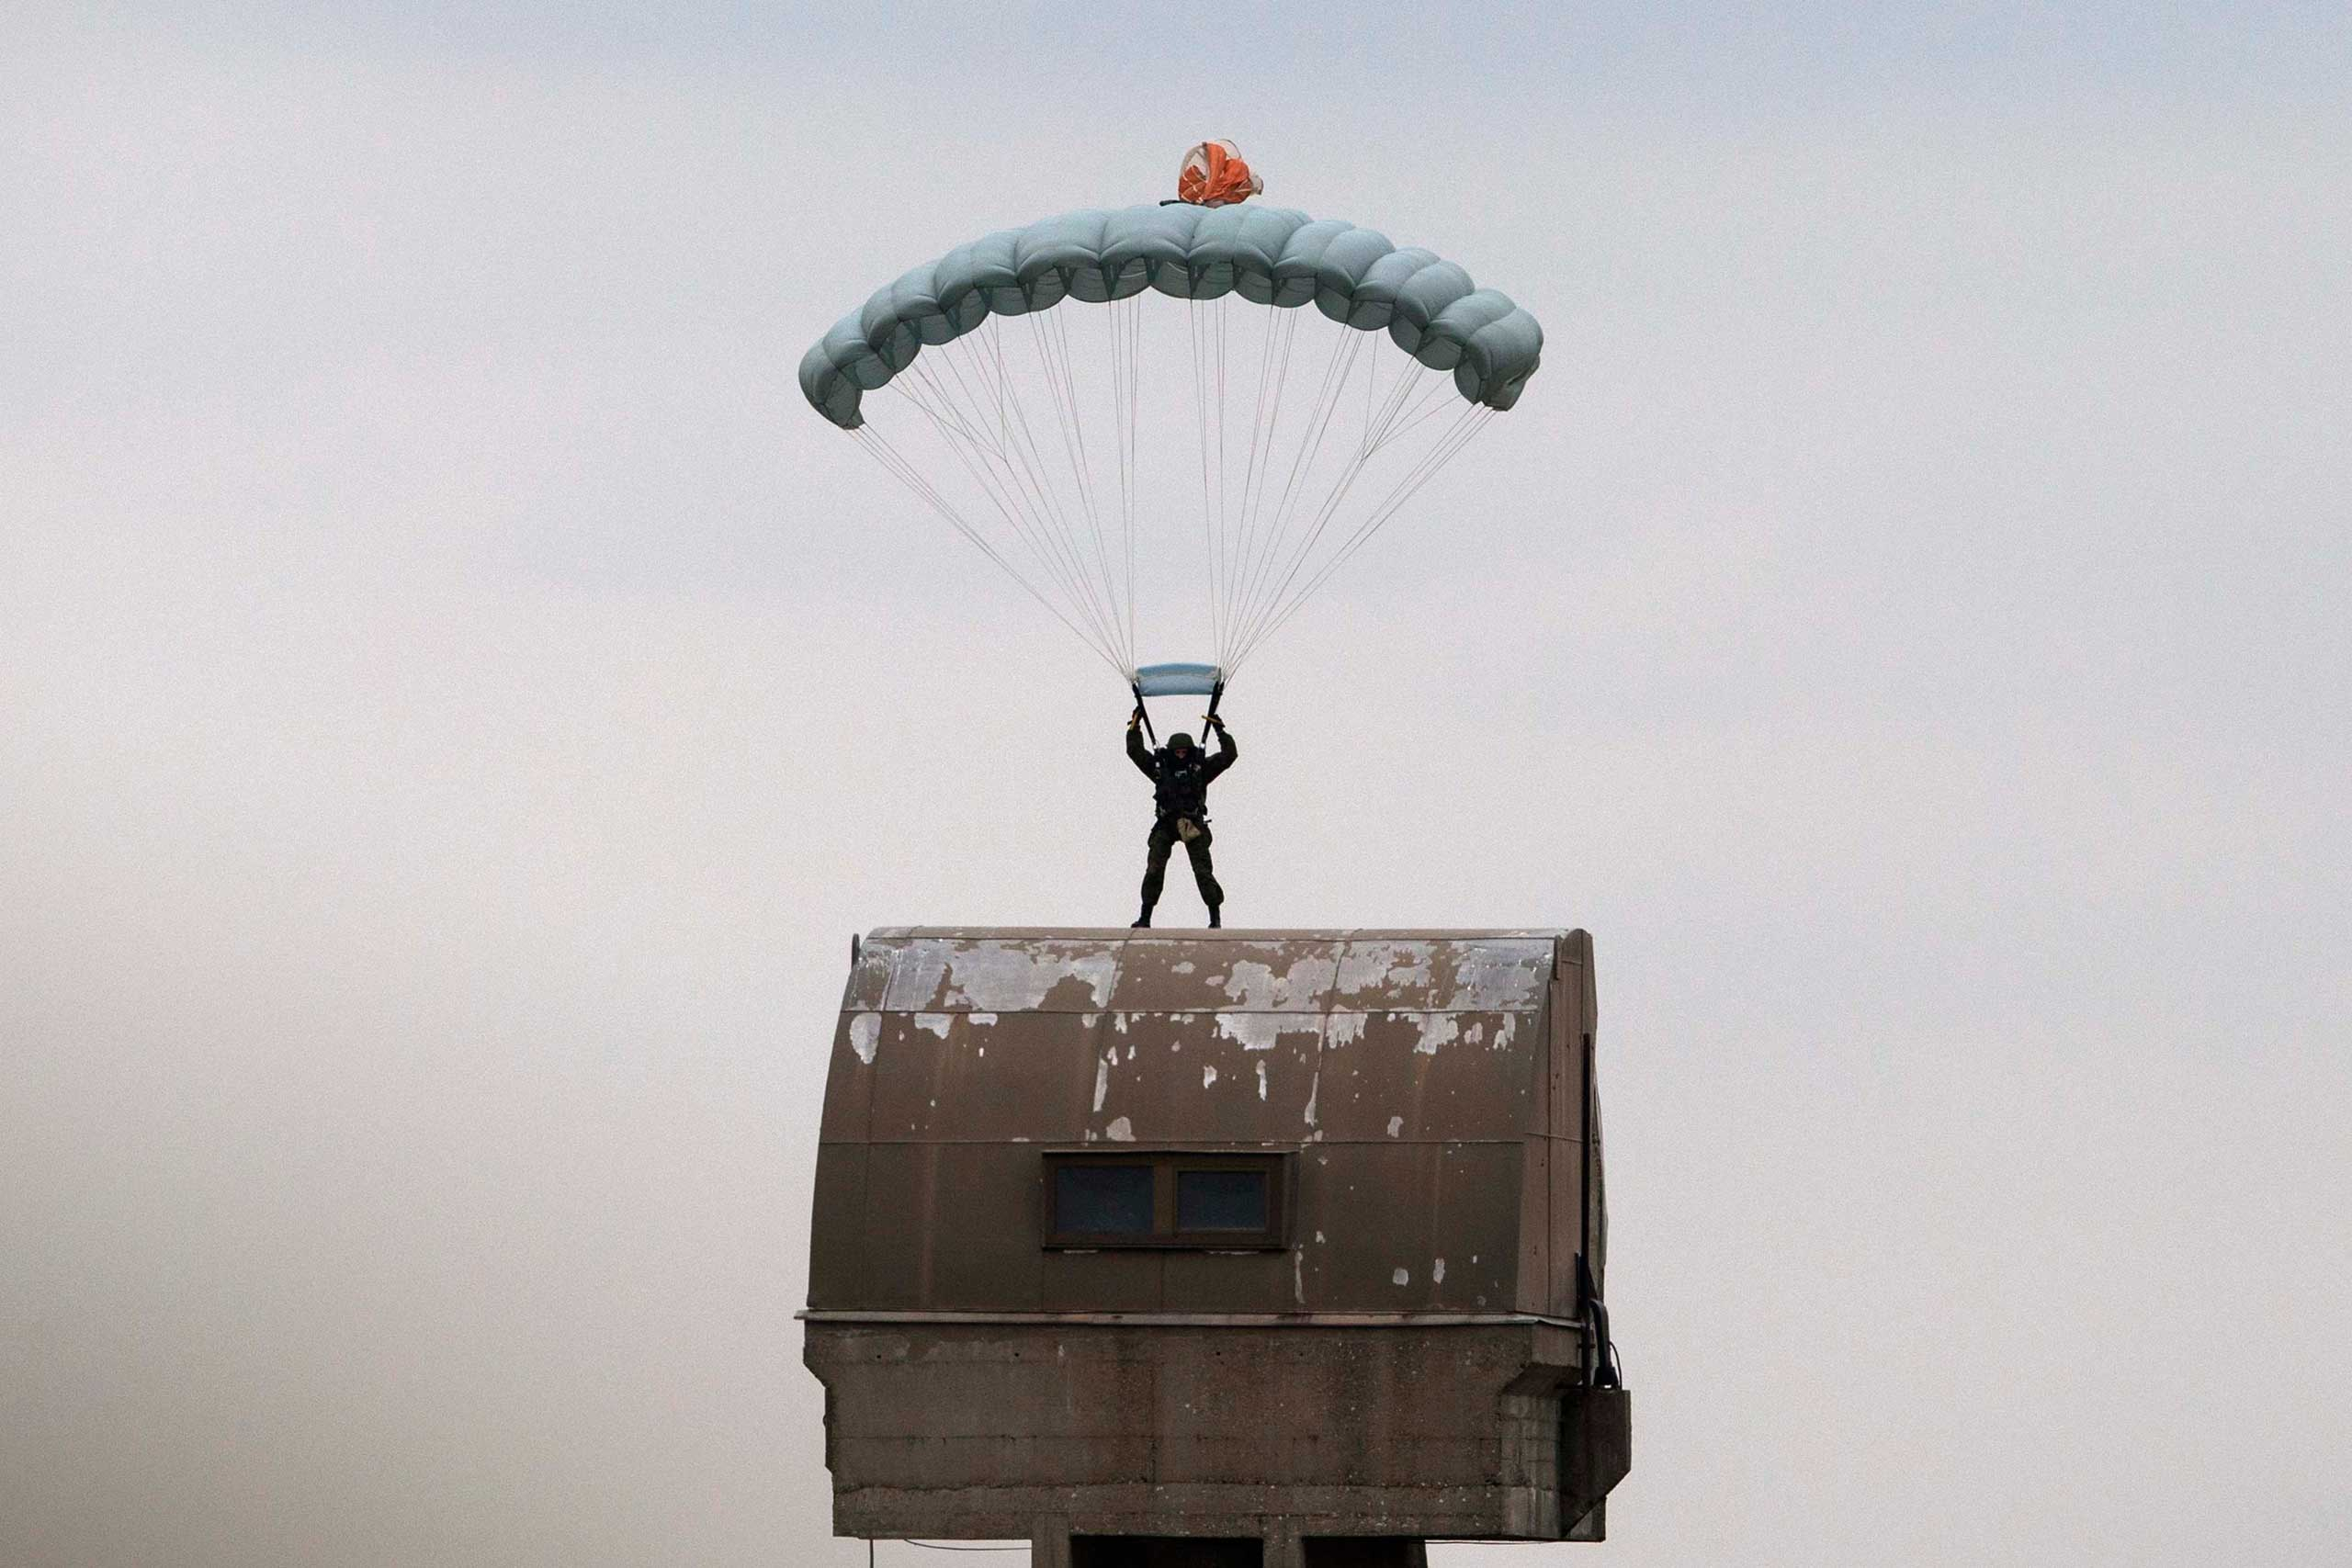 Nov. 14, 2014. A Russian paratrooper descends to the ground during a training exercise in the village of Nikinci, west from Belgrade, Serbia. Russian soldiers parachuted into open fields in western Serbia as part of an unprecedented joint military drill that has stirred controversy.